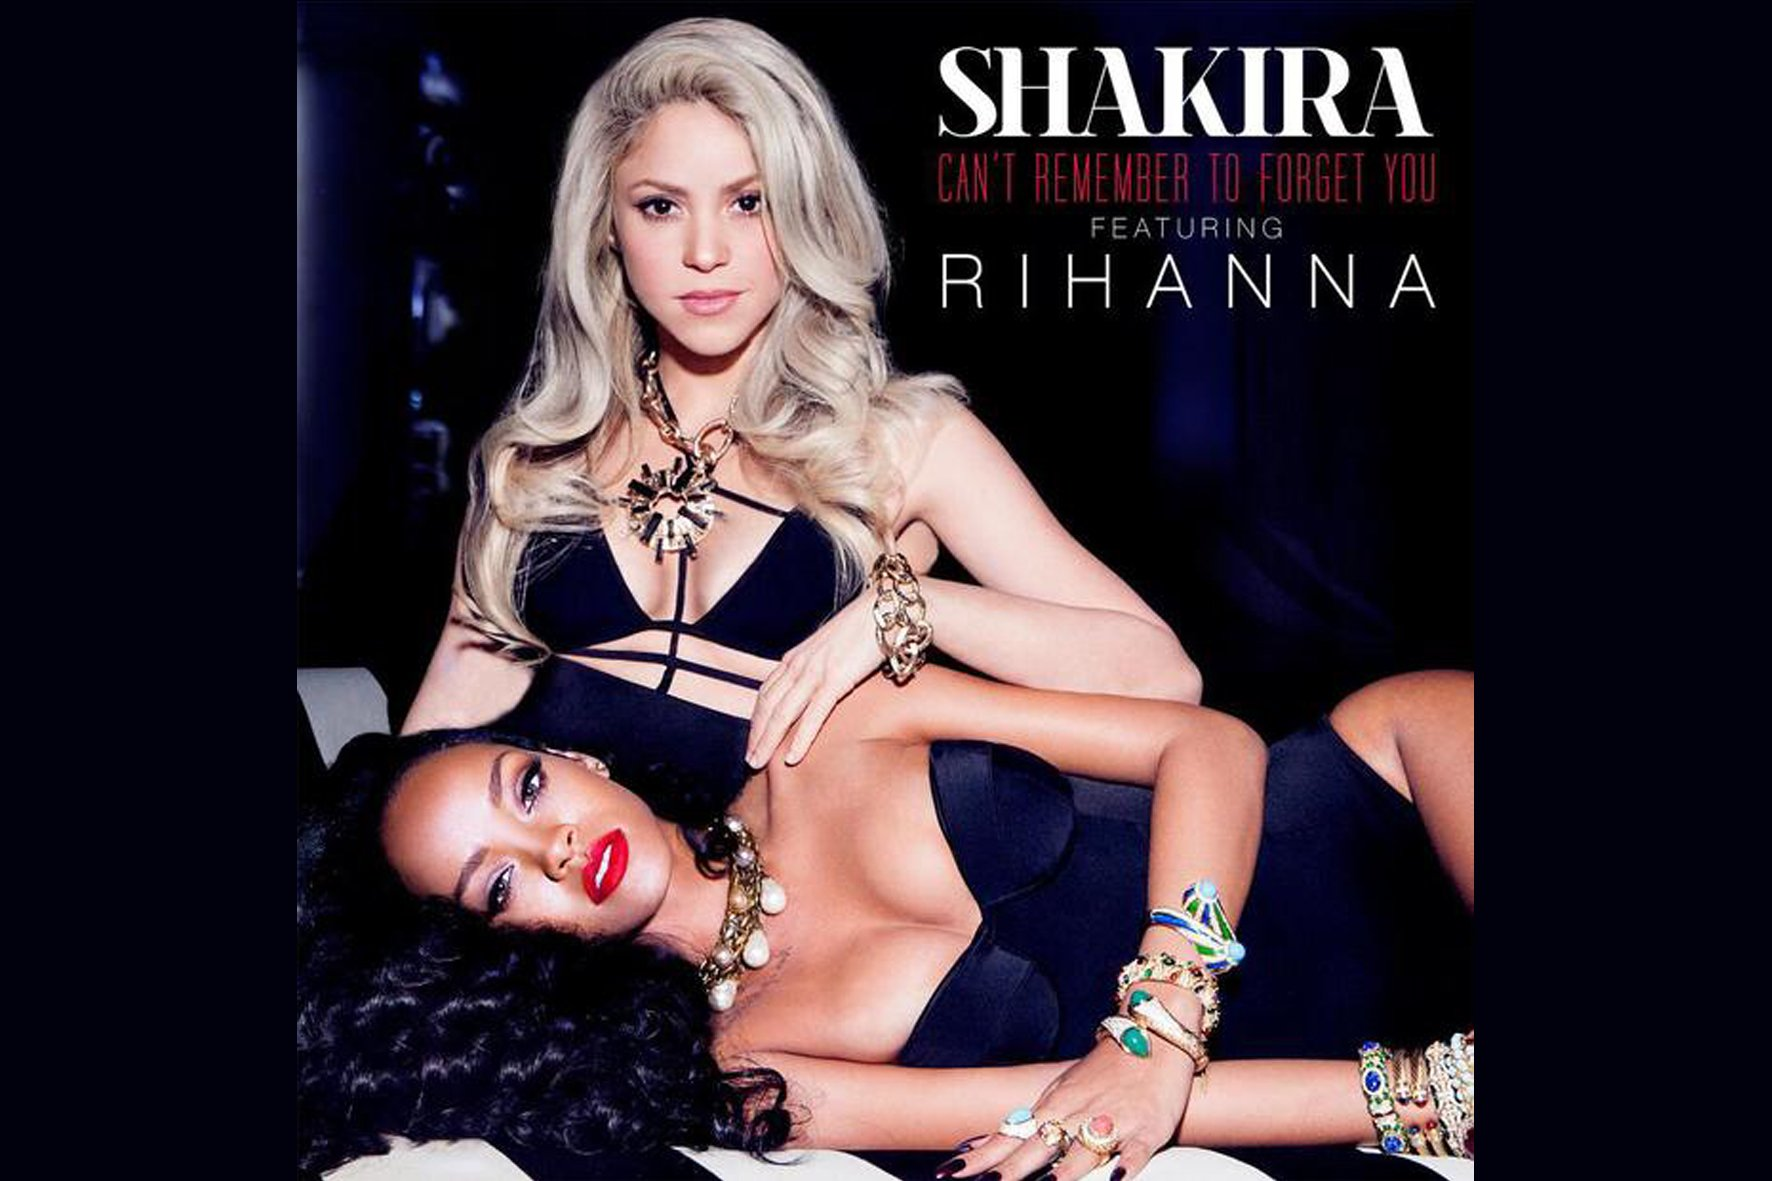 Shakira / Rihanna : Can't Remember To Forget You